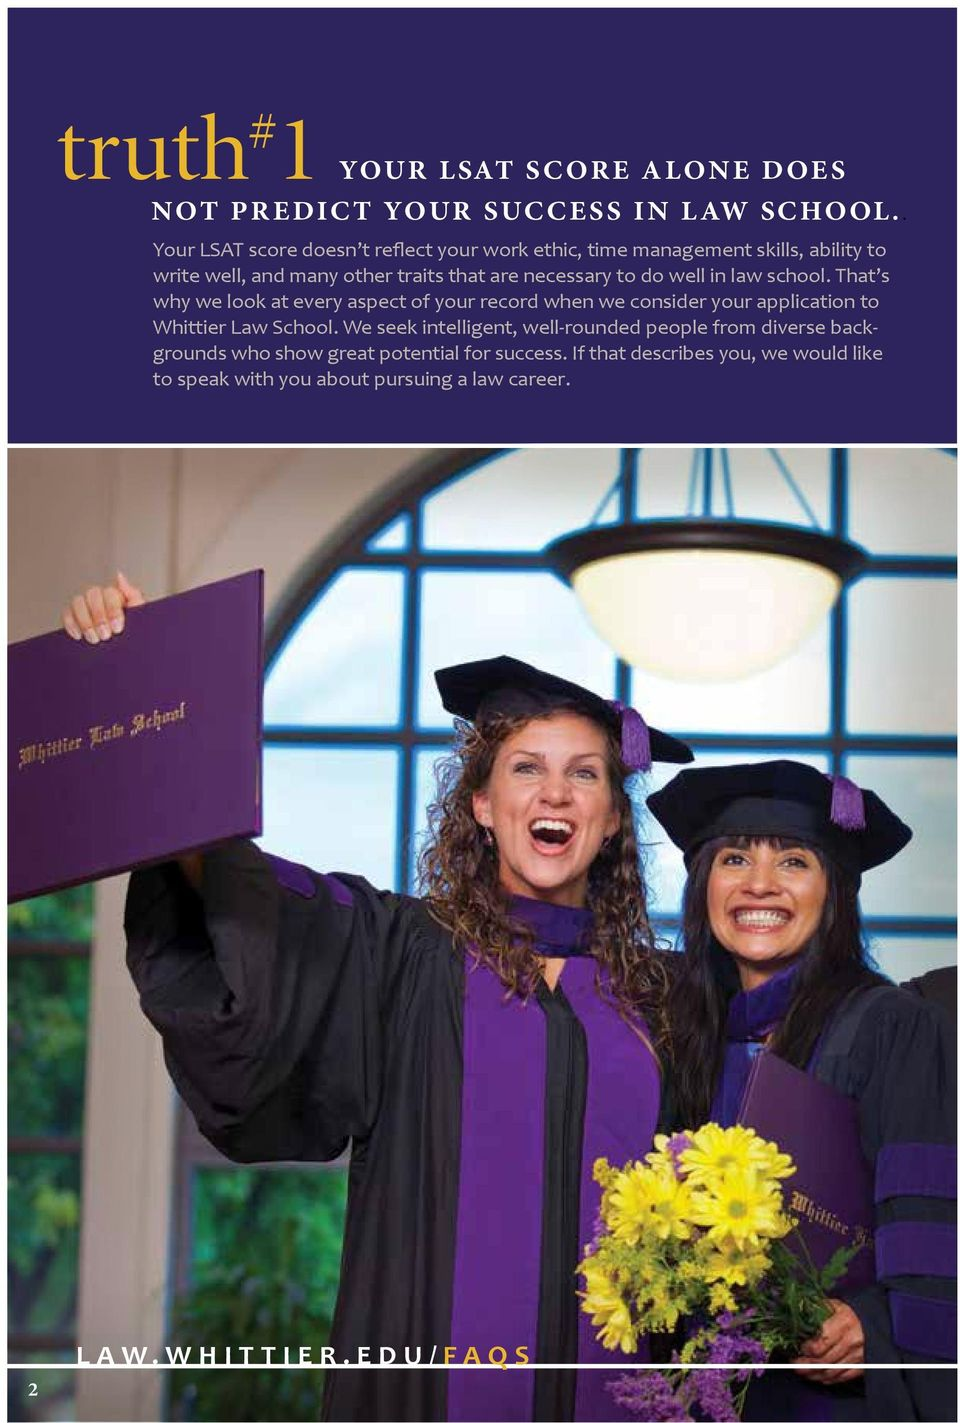 to do well in law school. That s why we look at every aspect of your record when we consider your application to Whittier Law School.